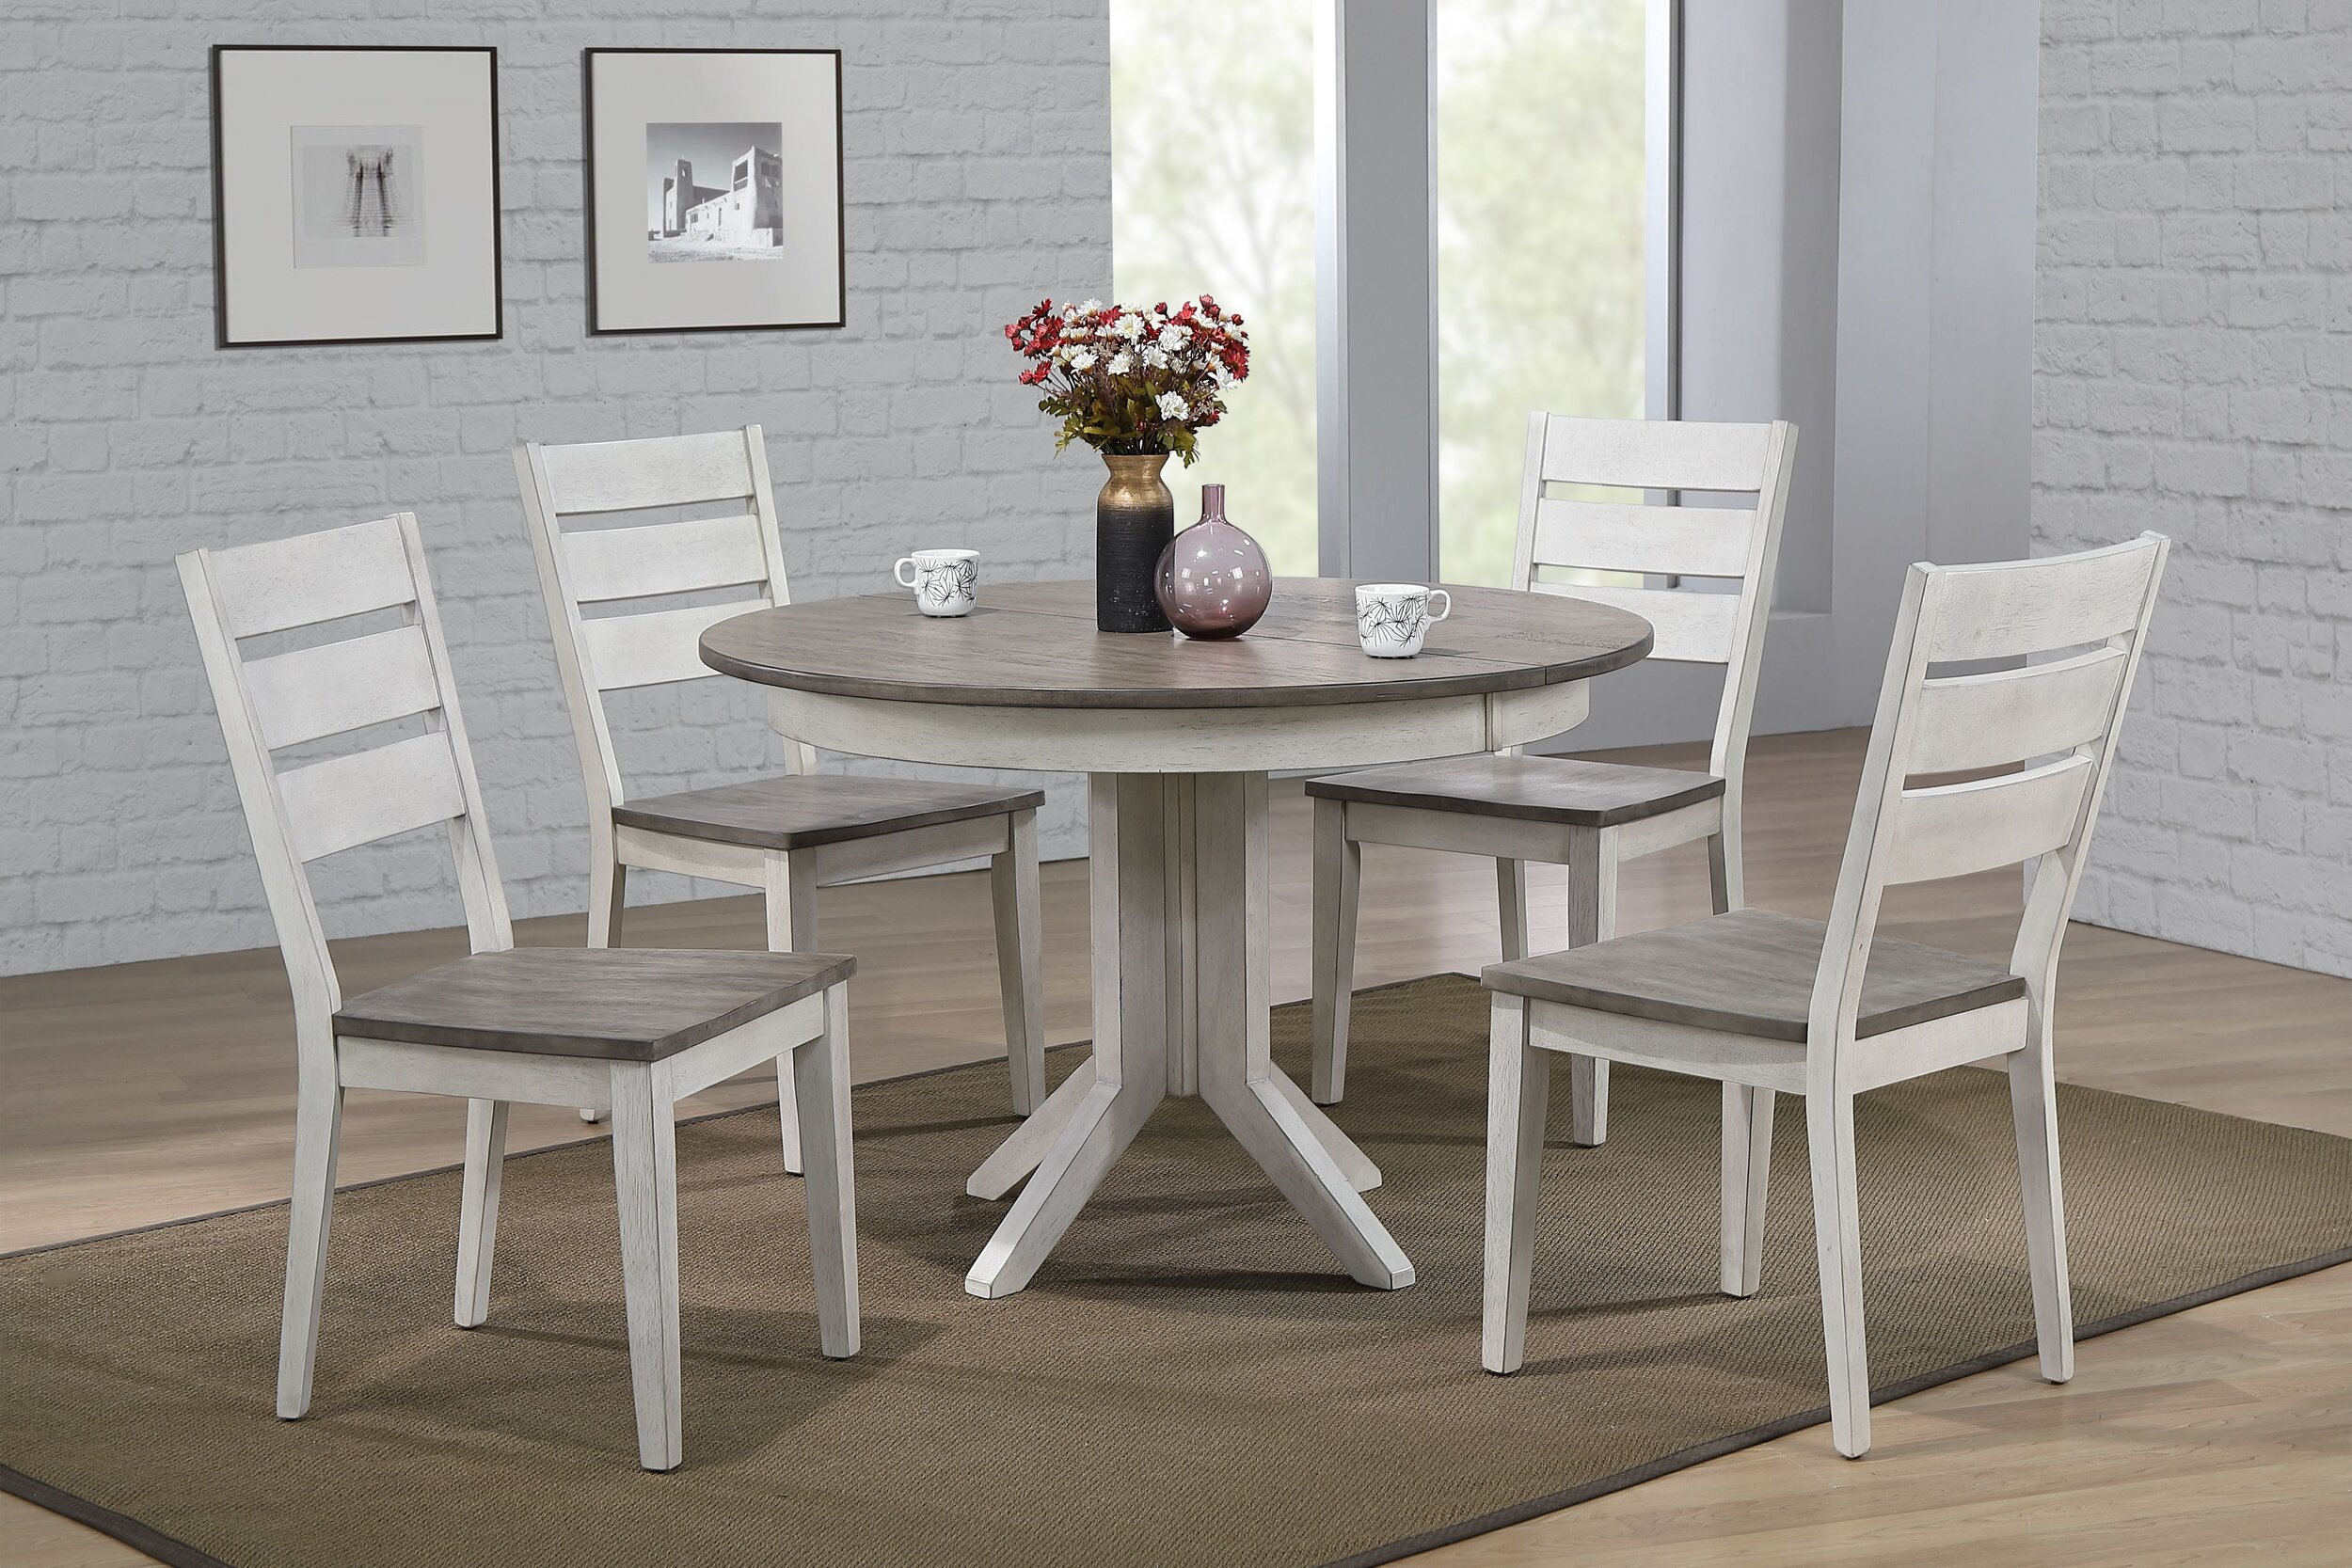 "45""x45""x63"" Transitional Table In Ash & Stormy White With Contemporary Ladder Back Chairs (7- Piece Dining Set)"